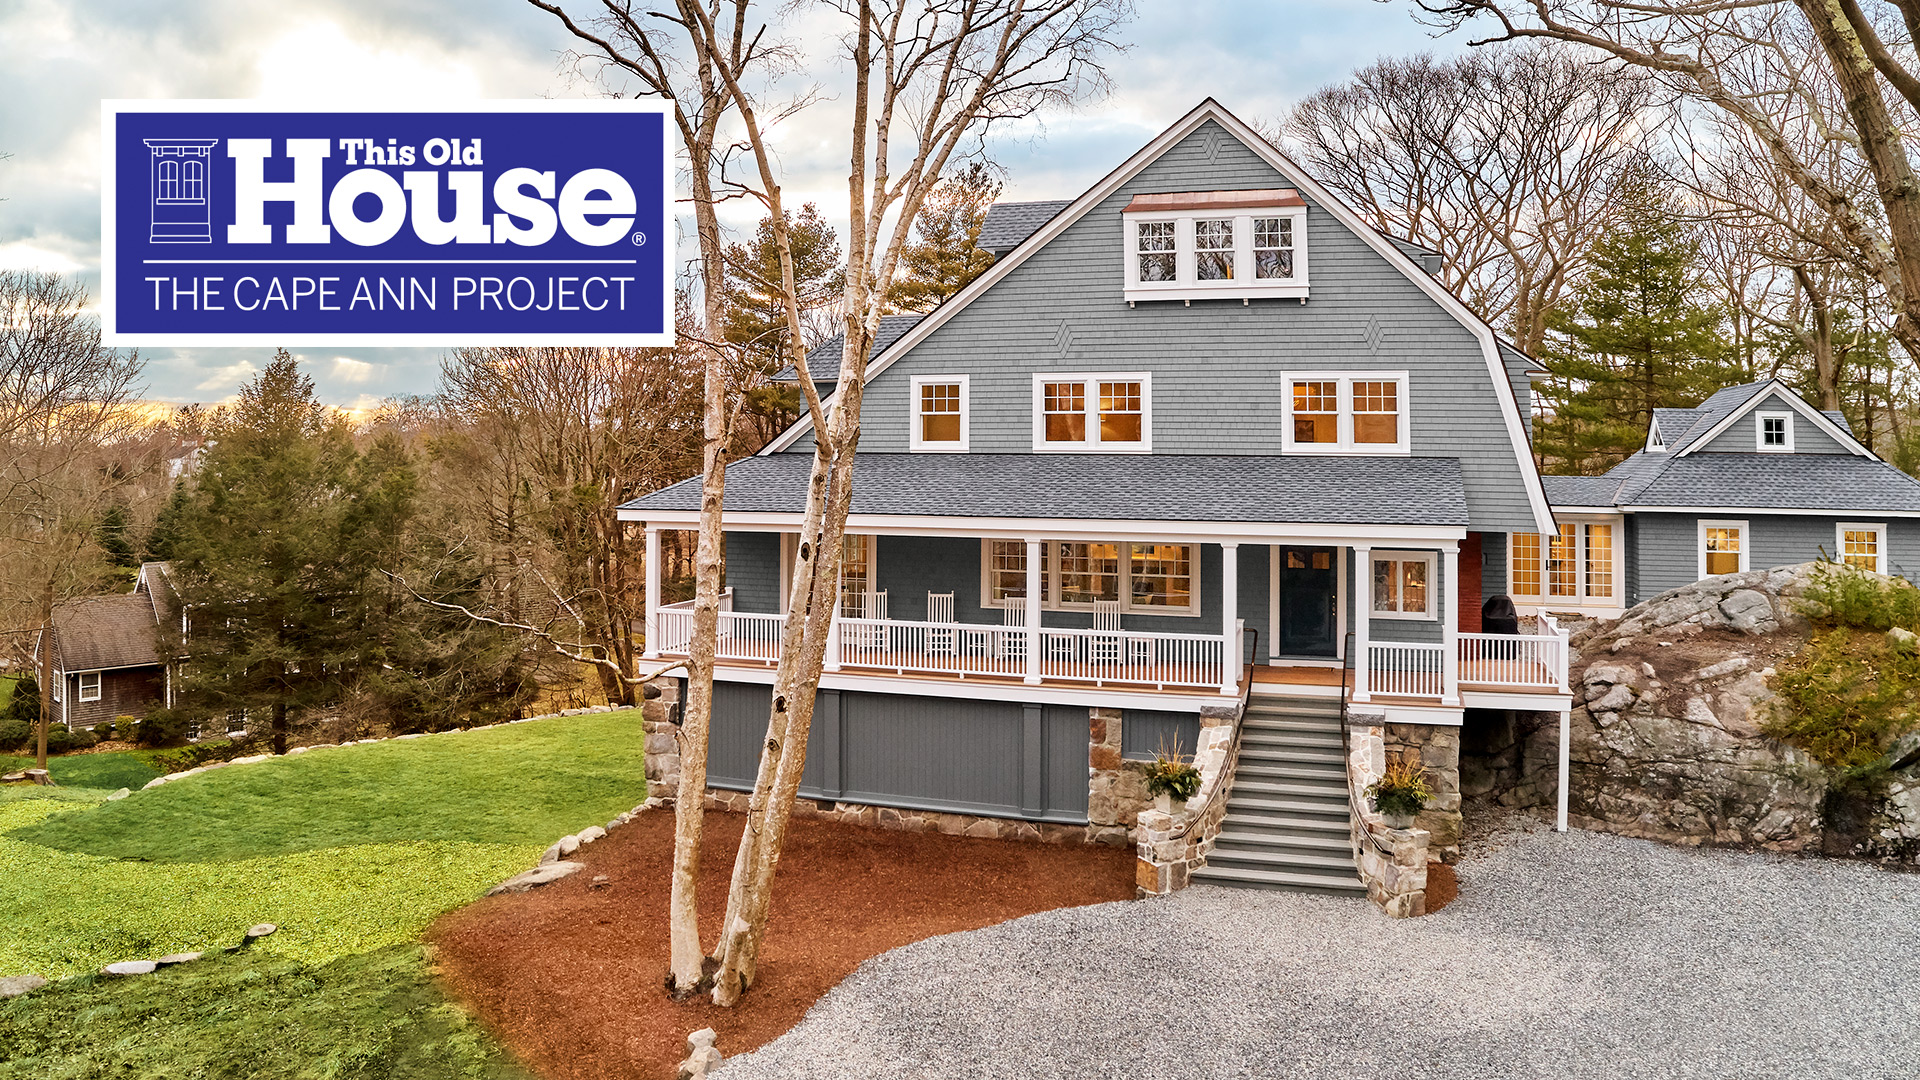 TOH house project in Cape Ann